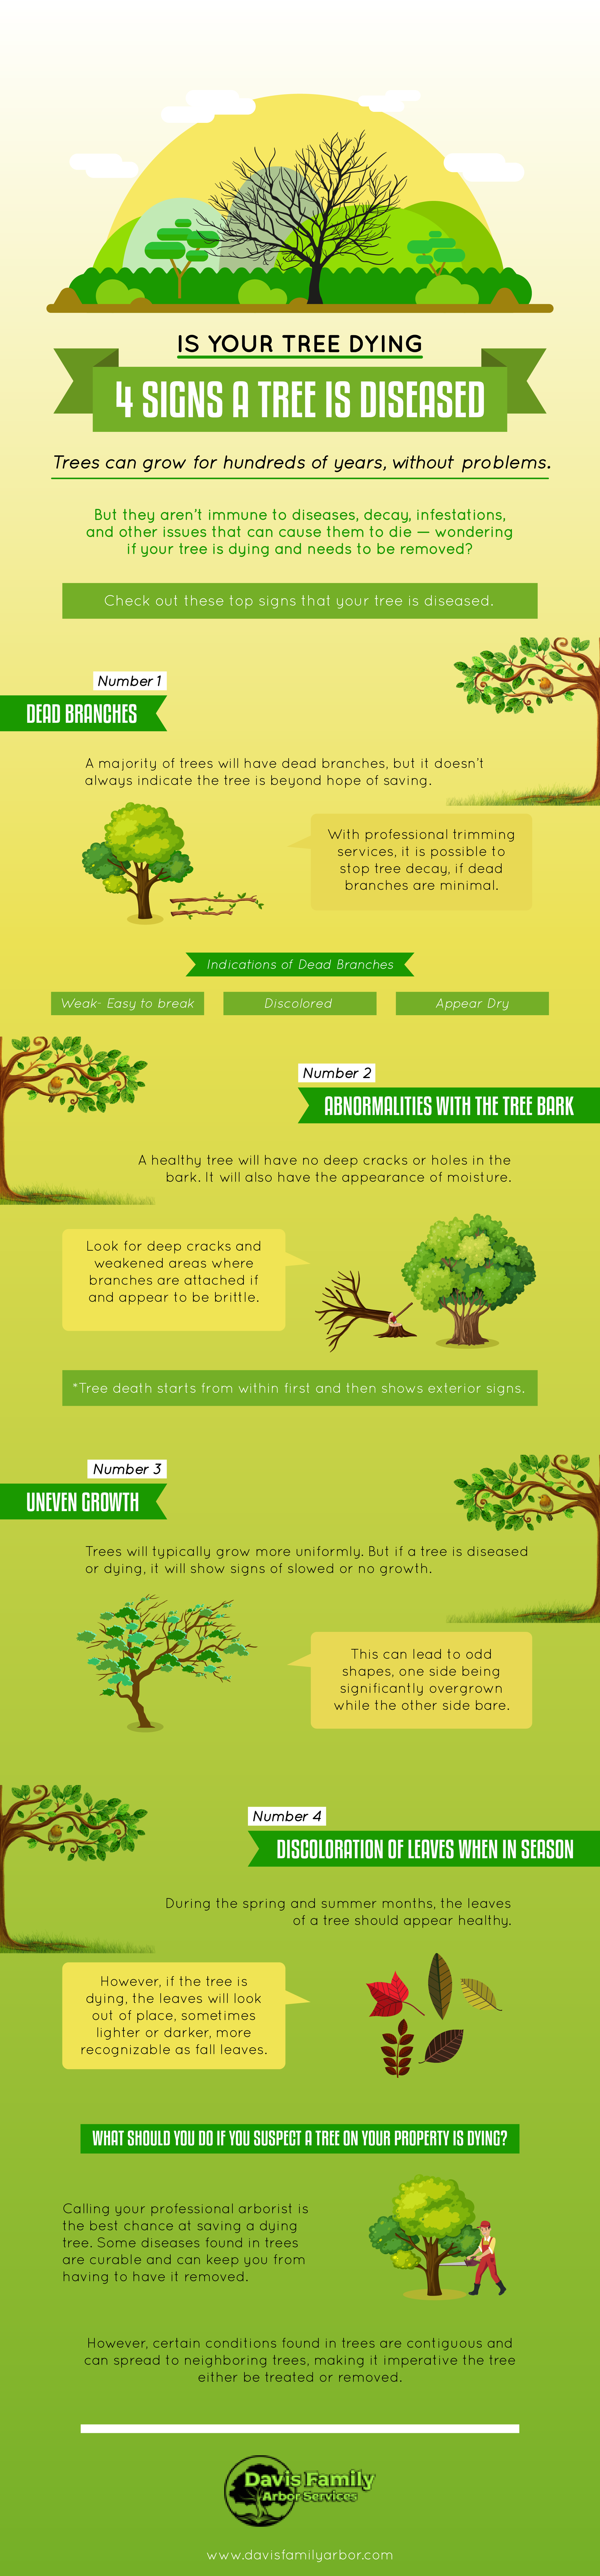 Is Your Tree Dying?